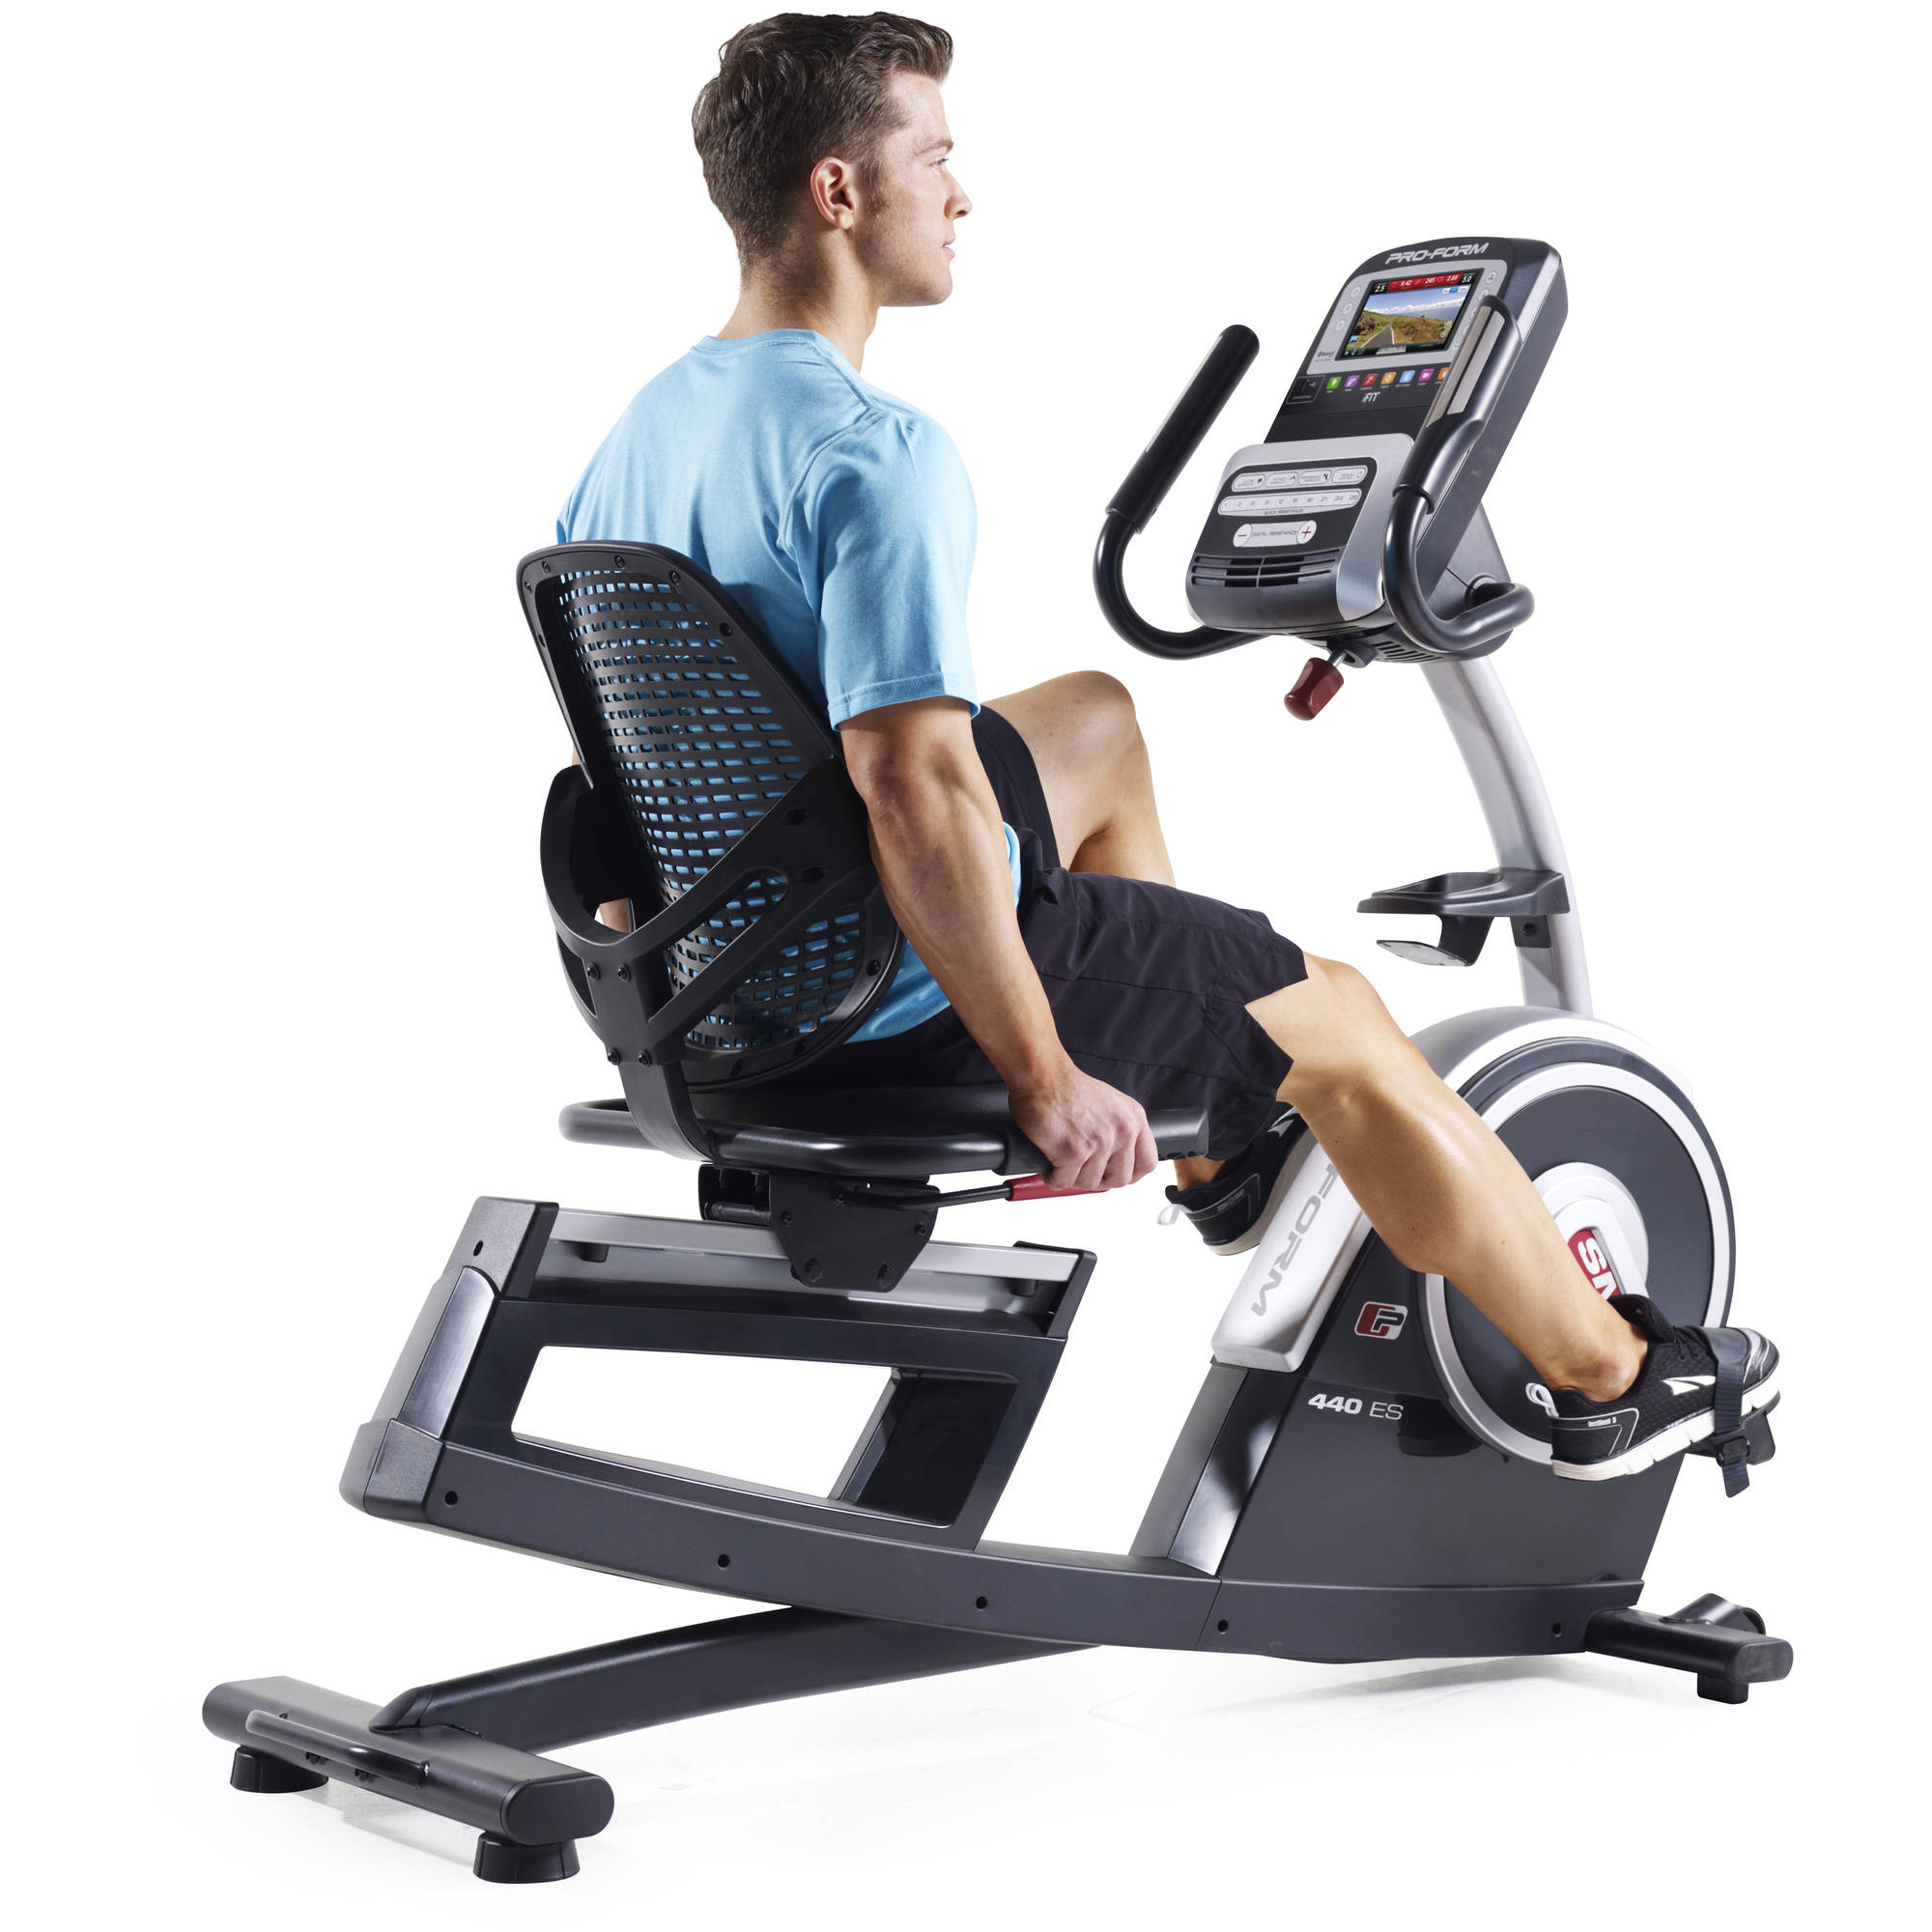 ProForm 740 ES Exercise Bike